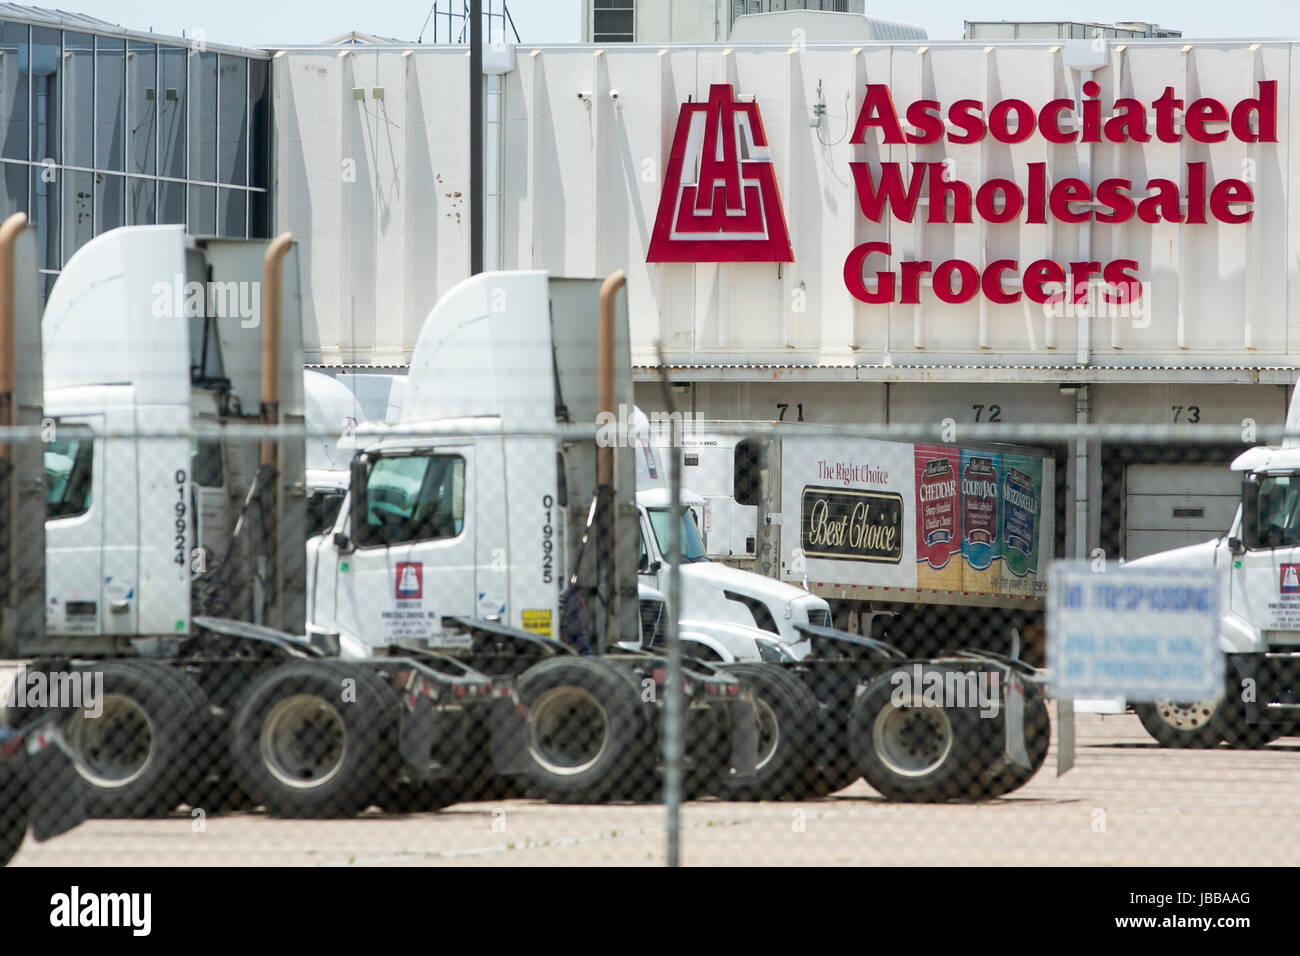 A logo sign outside of a facility occupied by Associated Wholesale Grocers, Inc., in Fort Worth, Texas, on May 29, Stock Photo